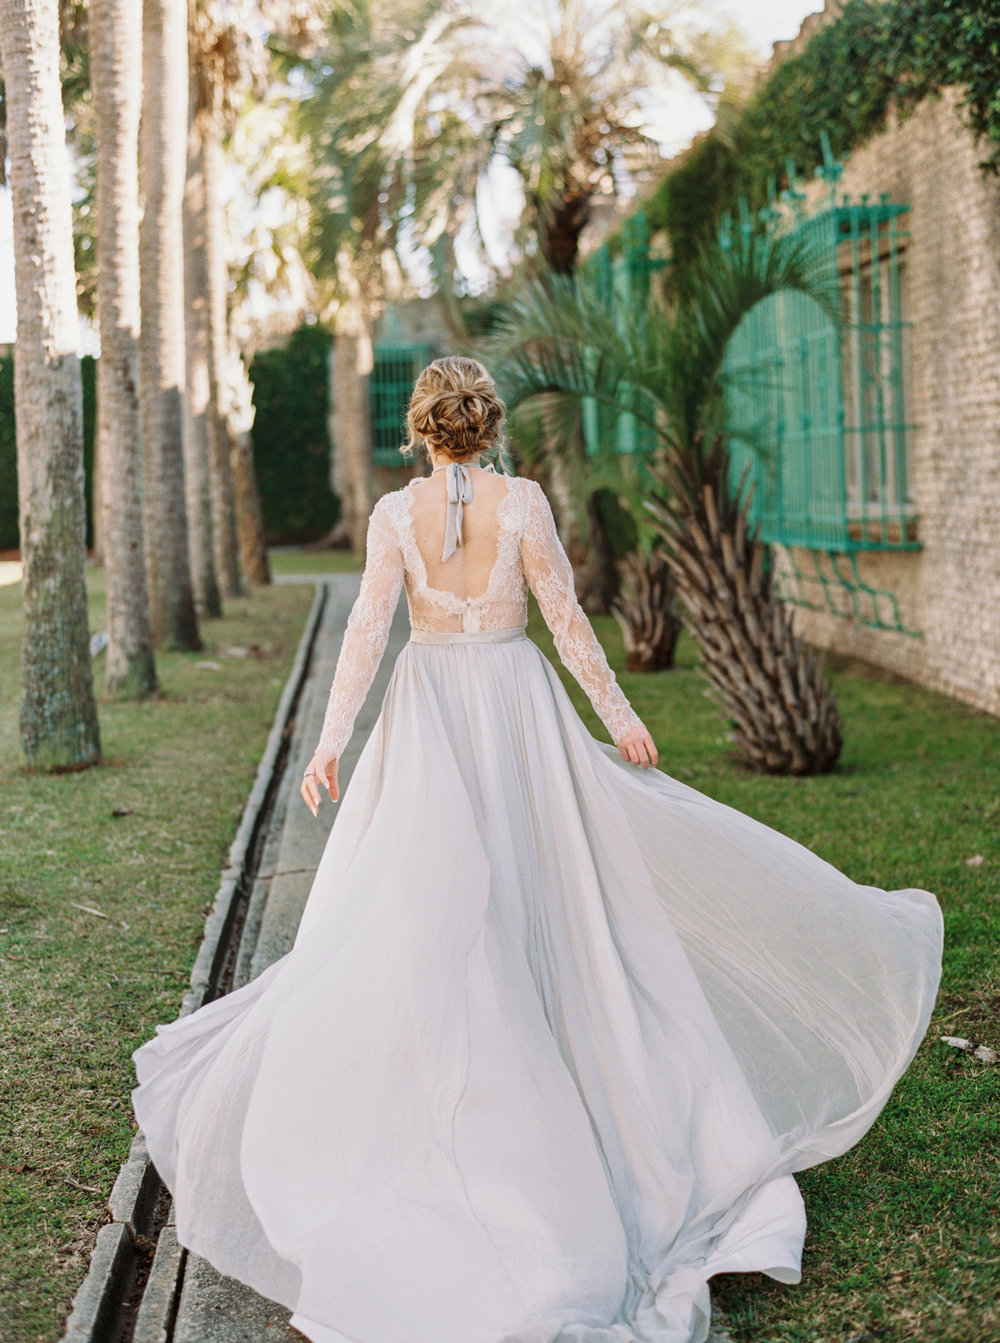 Buckingham gown by Emily Kotarski Bridal at Atalaya Castle // Photographed by JoPhoto // Event Styling by The Petal Report  // A Lowcountry Wedding Magazine